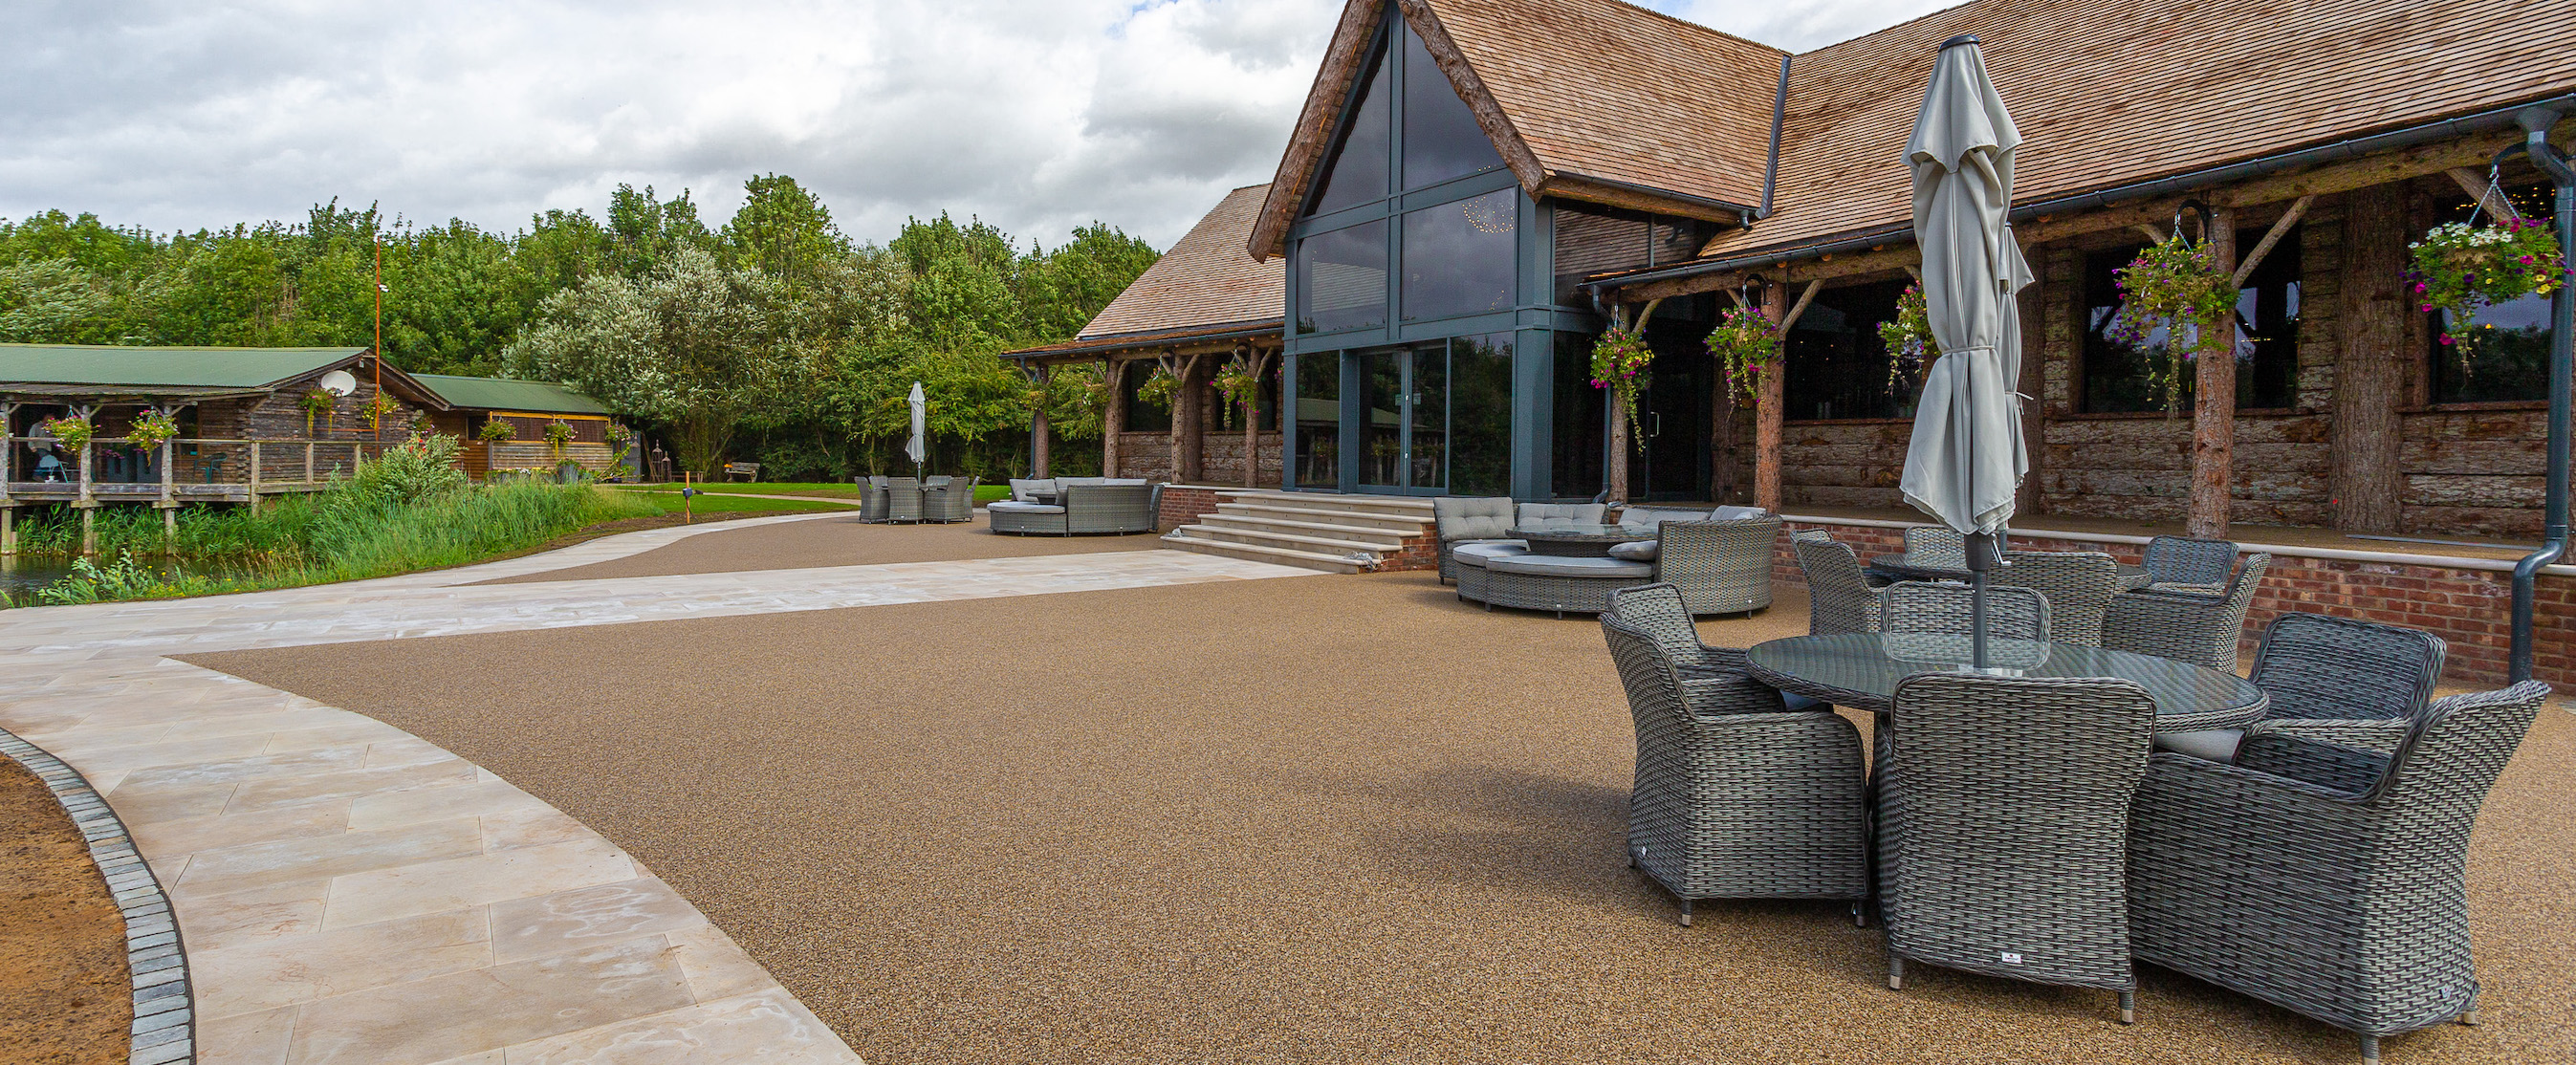 Traditional Resin Bound at Wedding Venue